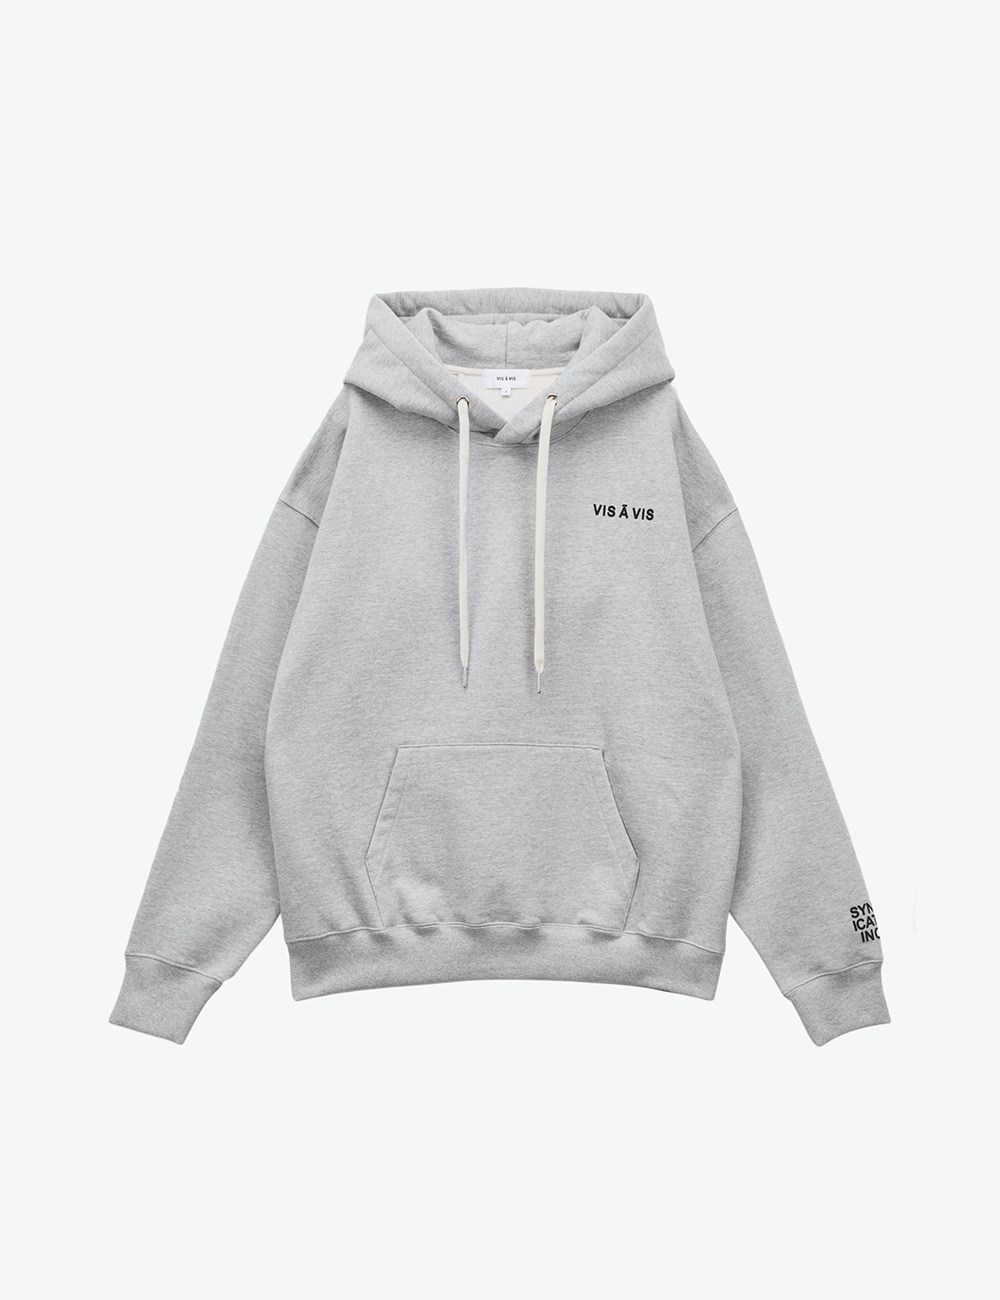 V LOGO UNISEX HOODED SWEATSHIRT (GRAY)